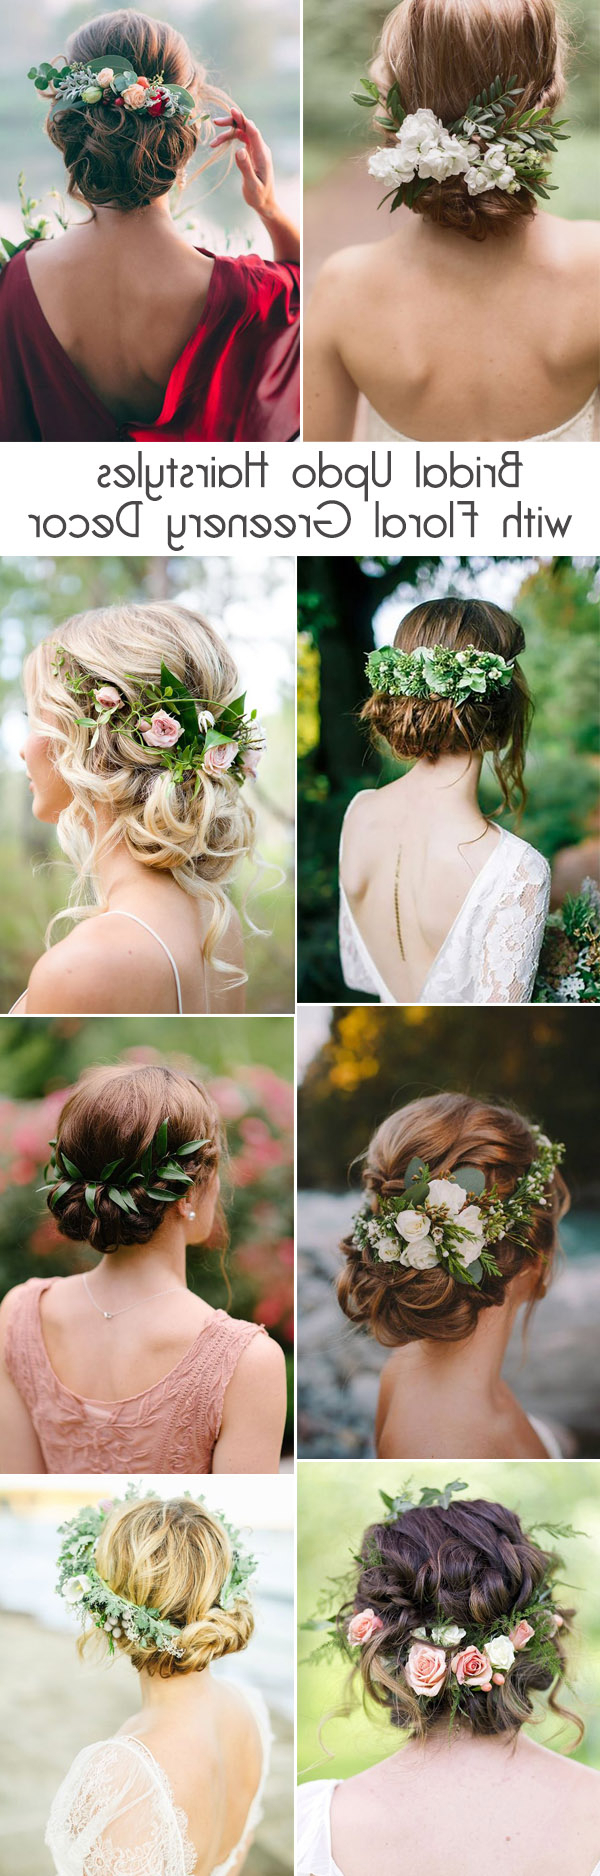 Most Popular Romantic Florals Updo Hairstyles Pertaining To 25 Drop Dead Bridal Updo Hairstyles Ideas For Any Wedding (View 17 of 20)